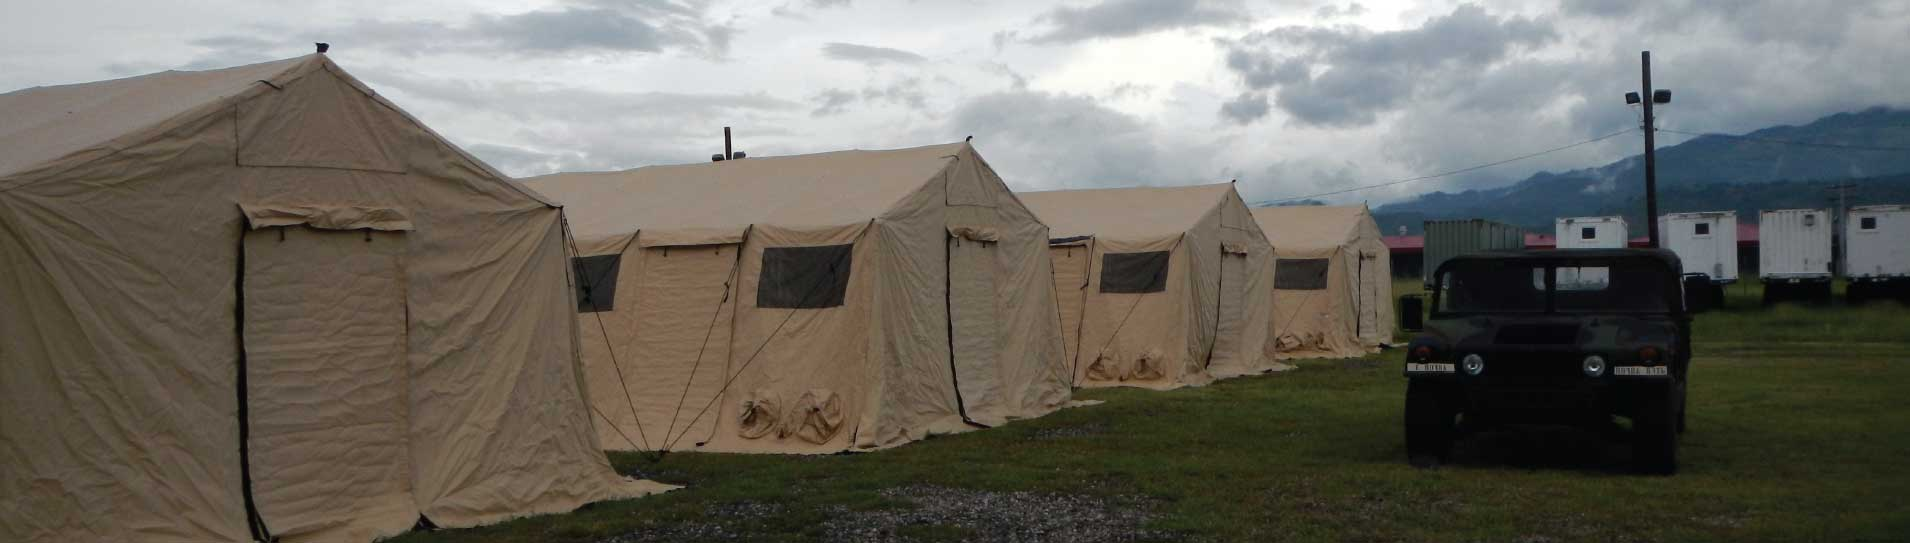 Military Tents & Military Tents - Nizam Canvas